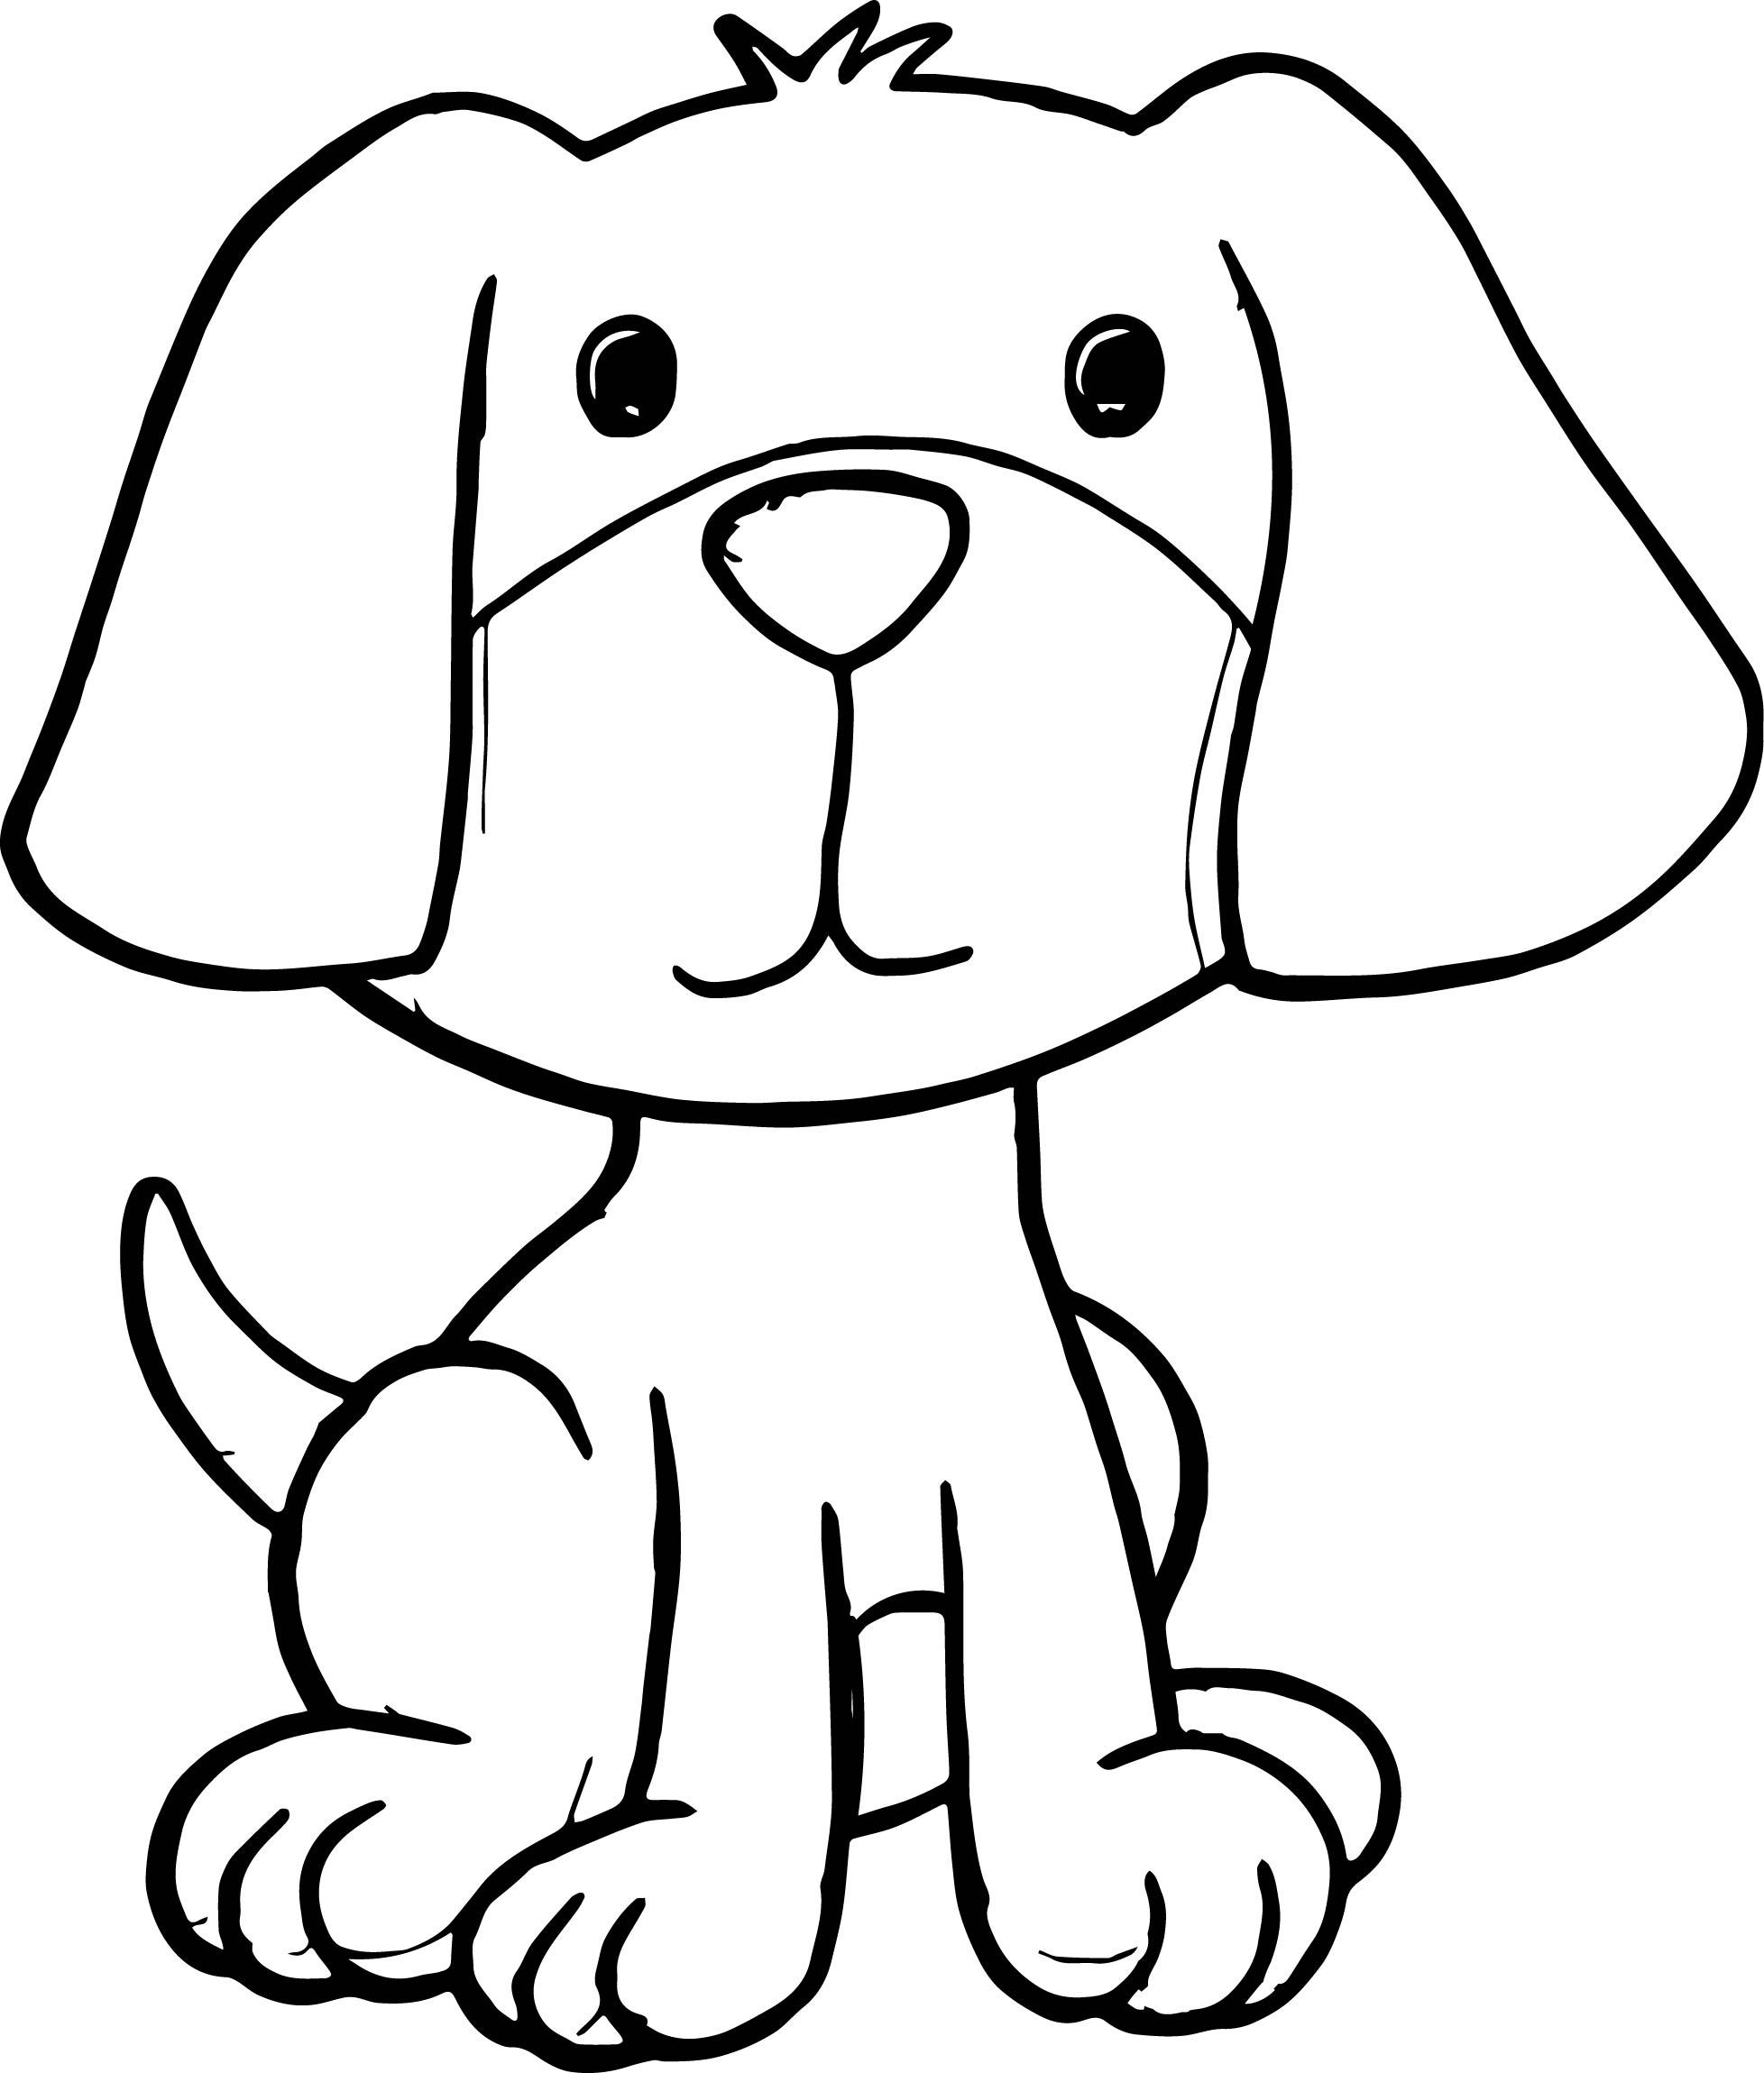 Puppy Pictures Of Cute Cartoon Puppies Dog Puppy Coloring